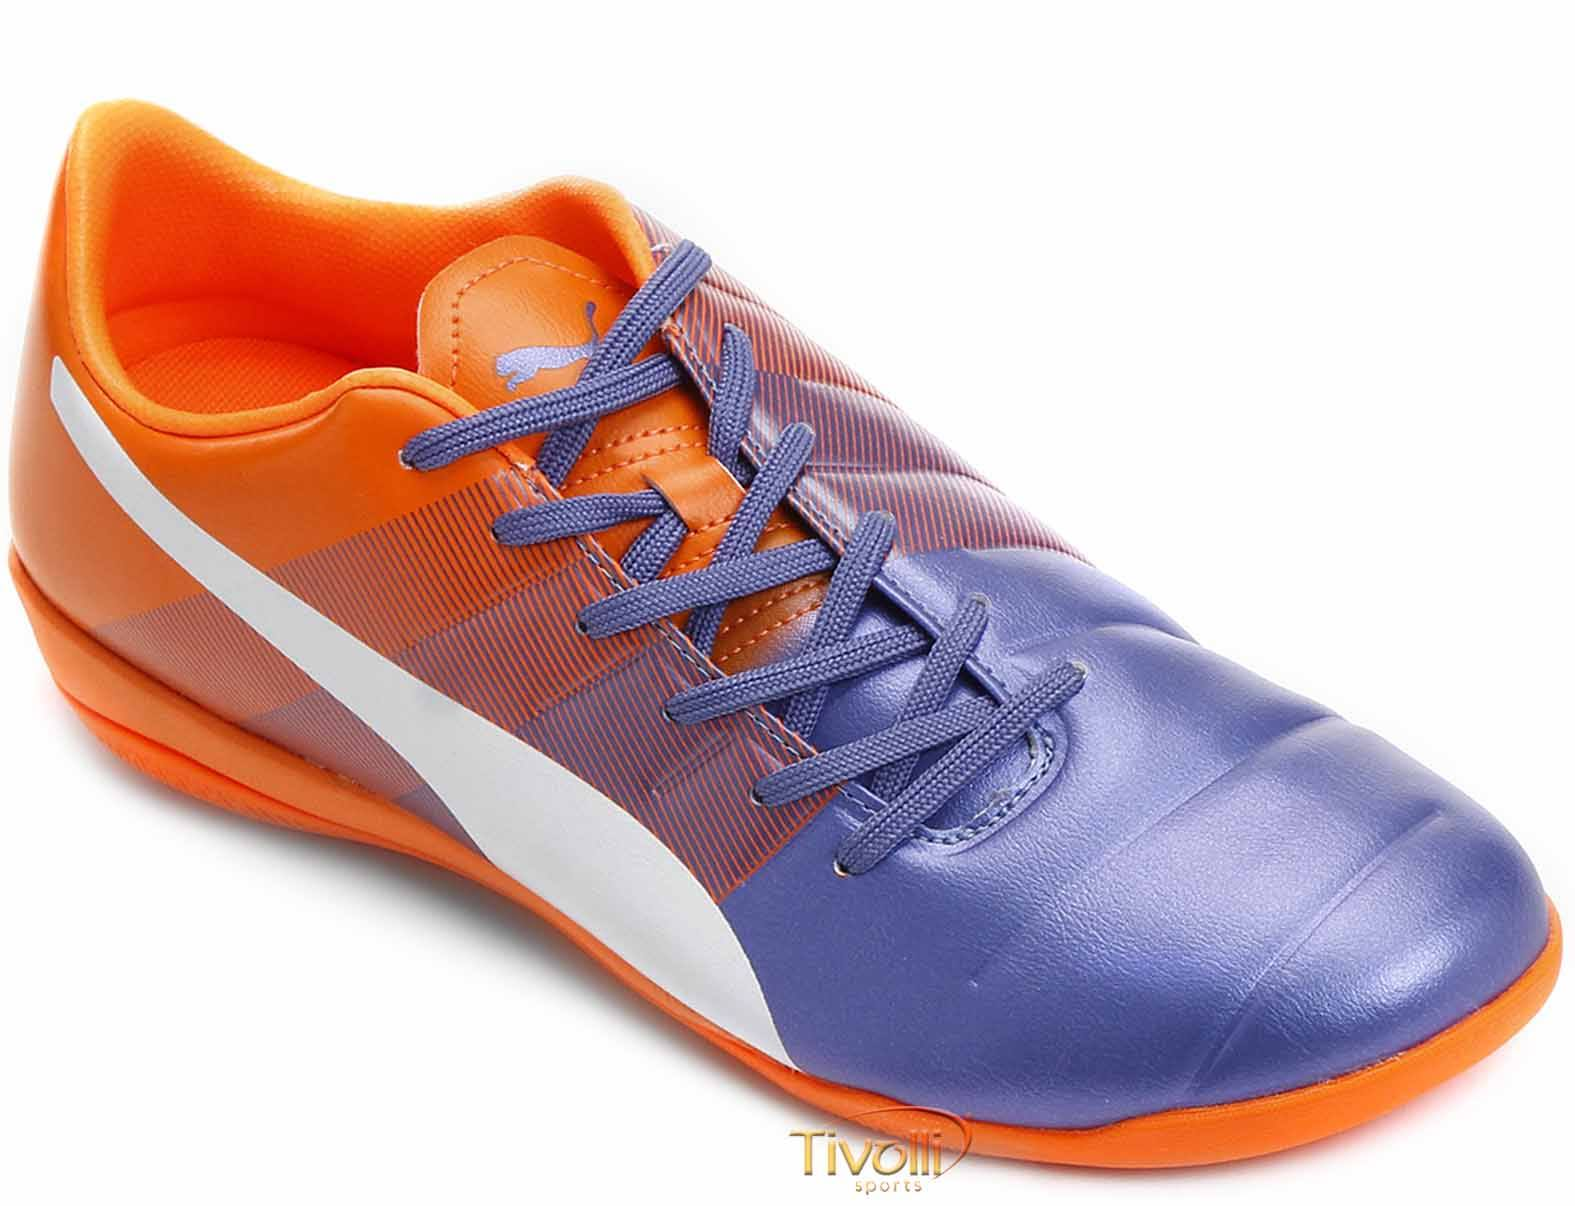 Chuteira Puma Evo Power 4.3 IC Futsal